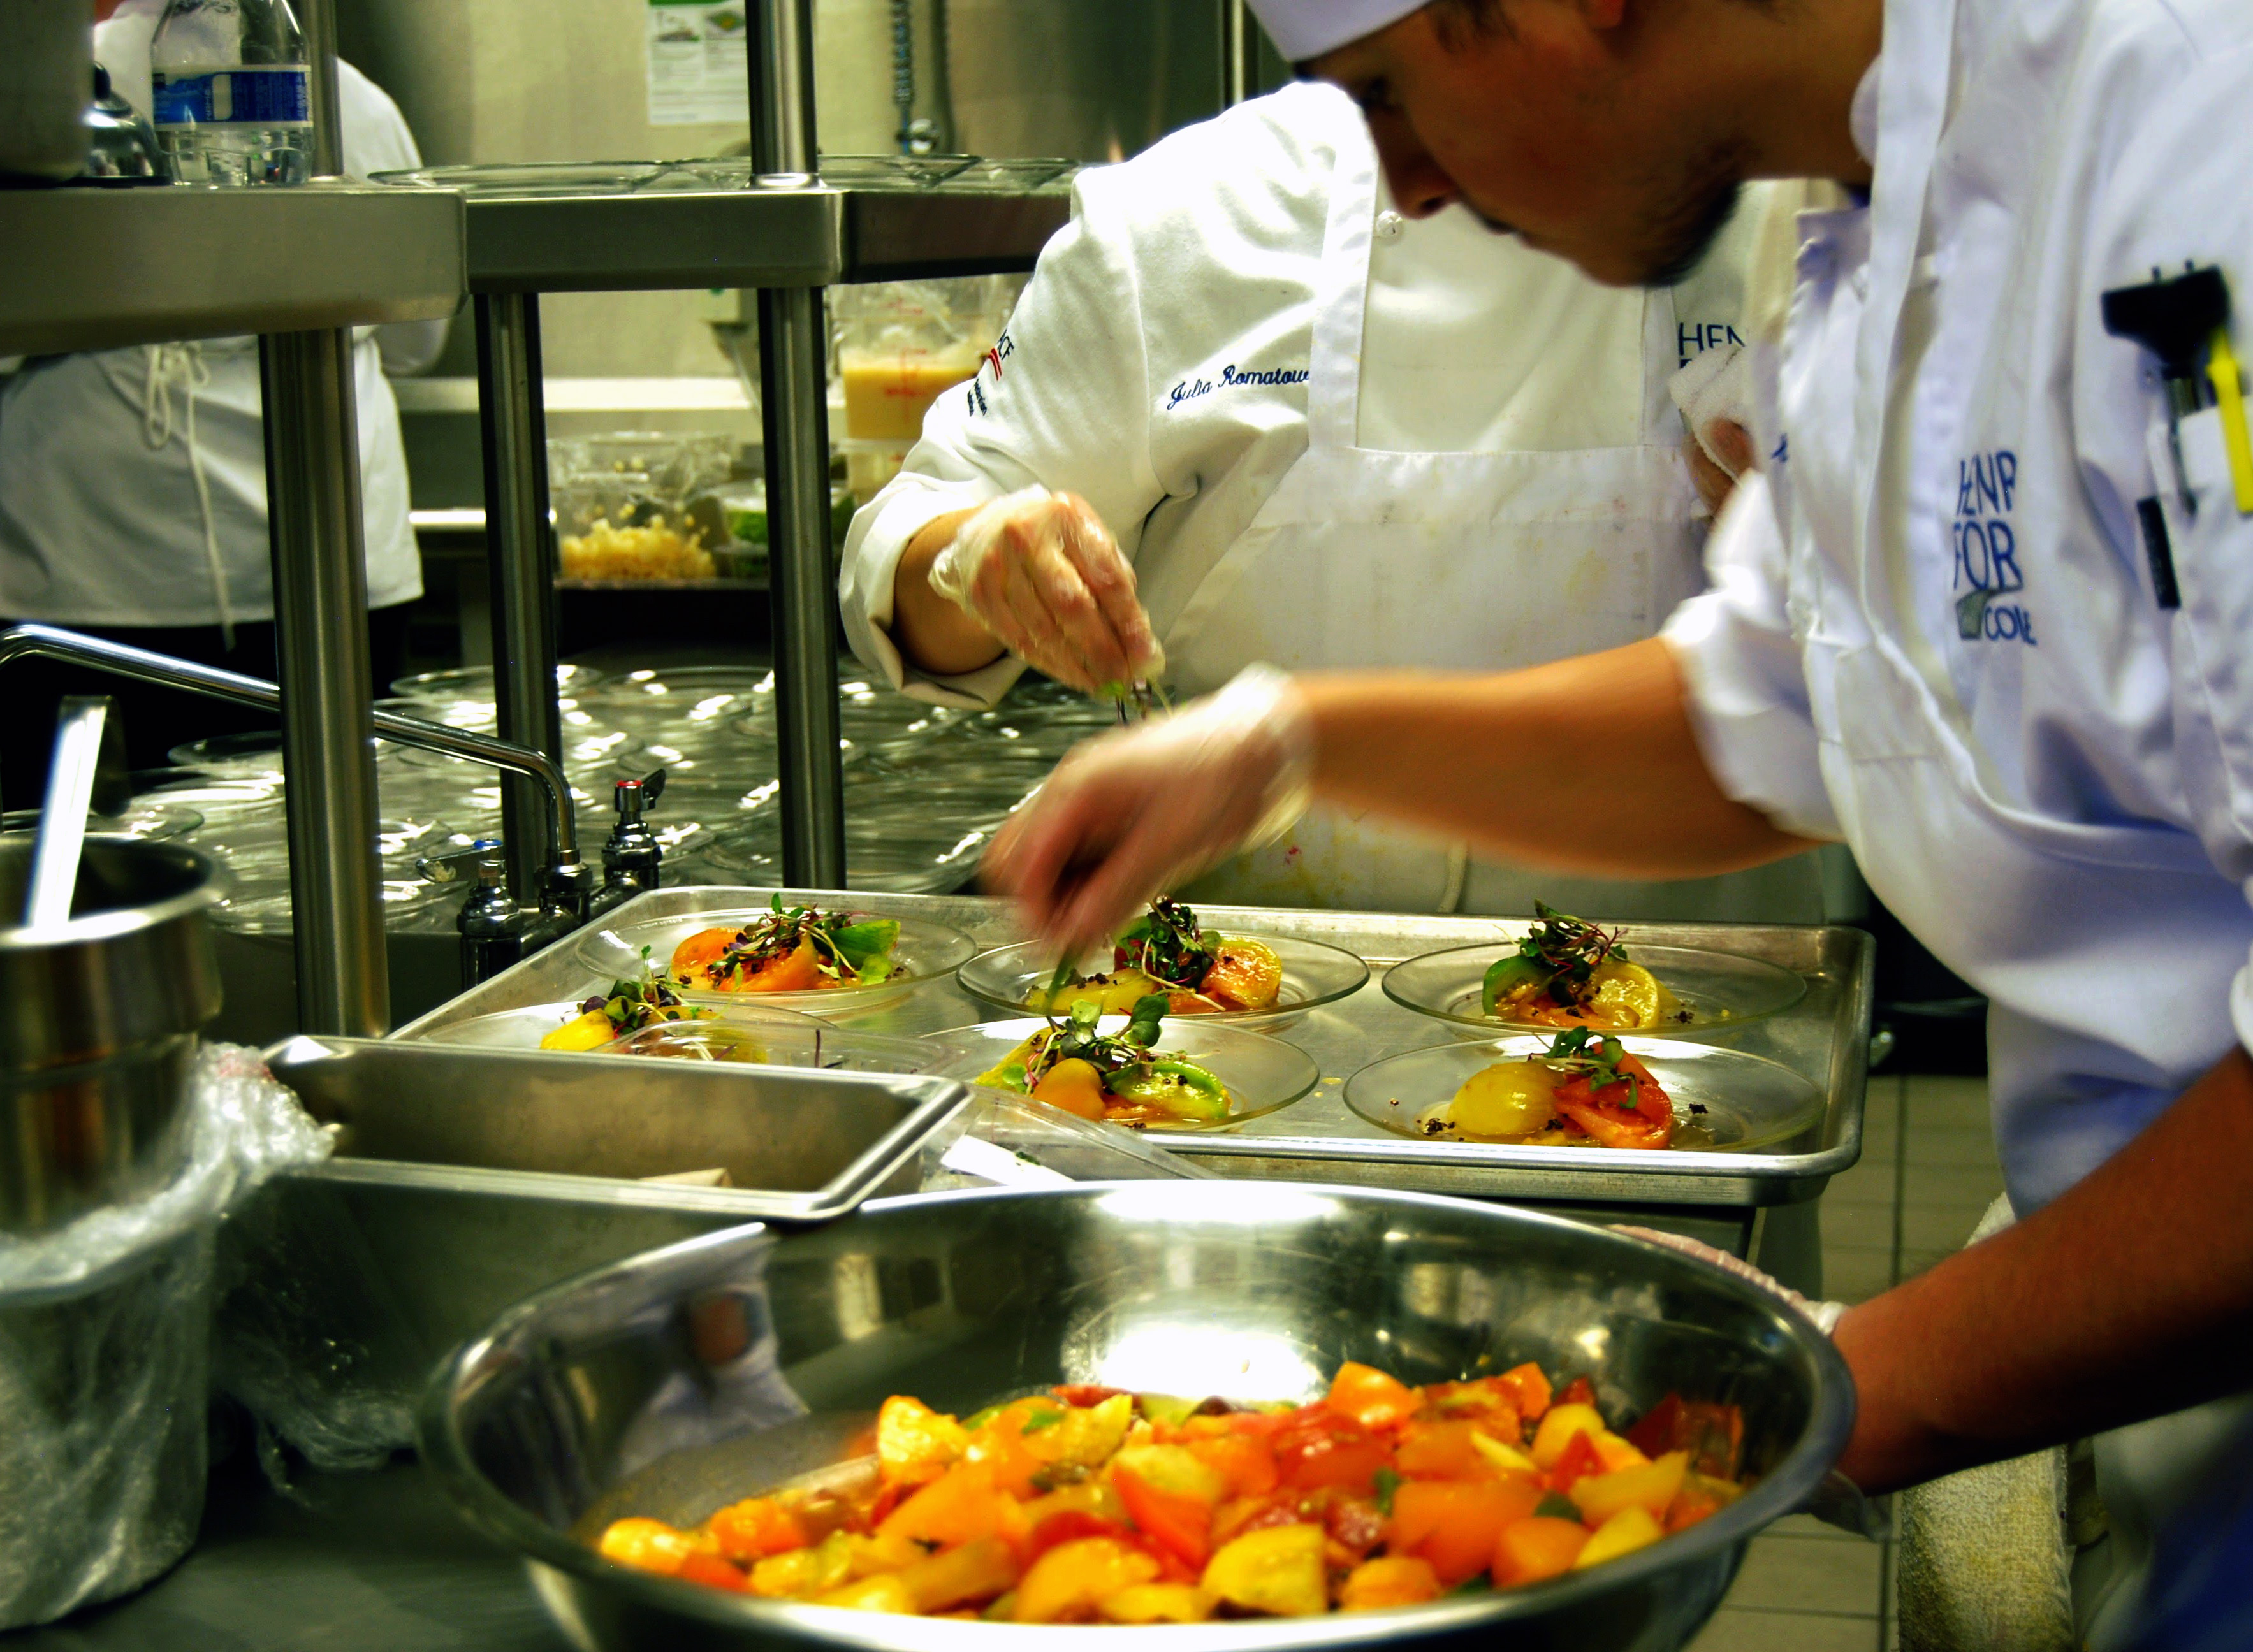 Culinary students putting garnishes on prepared dishes in an HFC kitchen